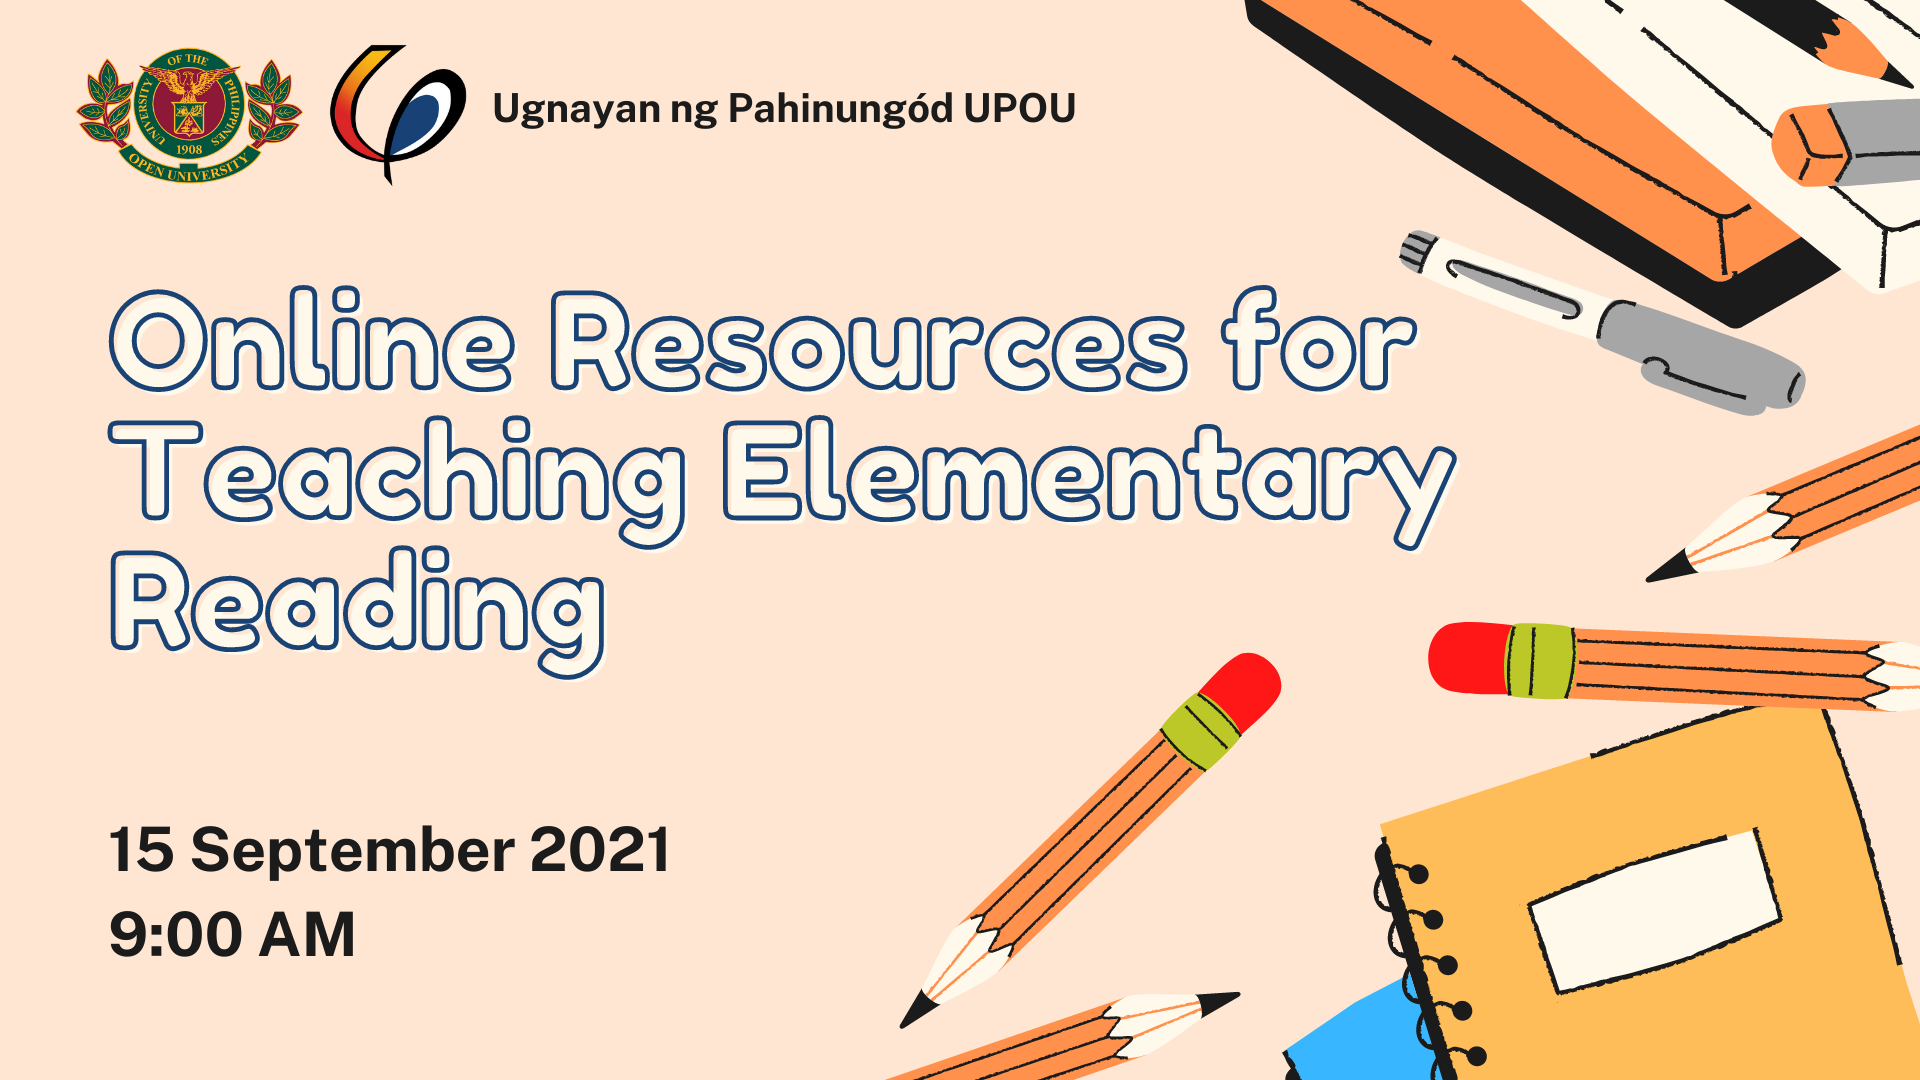 UPOU to hold Webinar on Online Resources for Teaching Elementary Reading